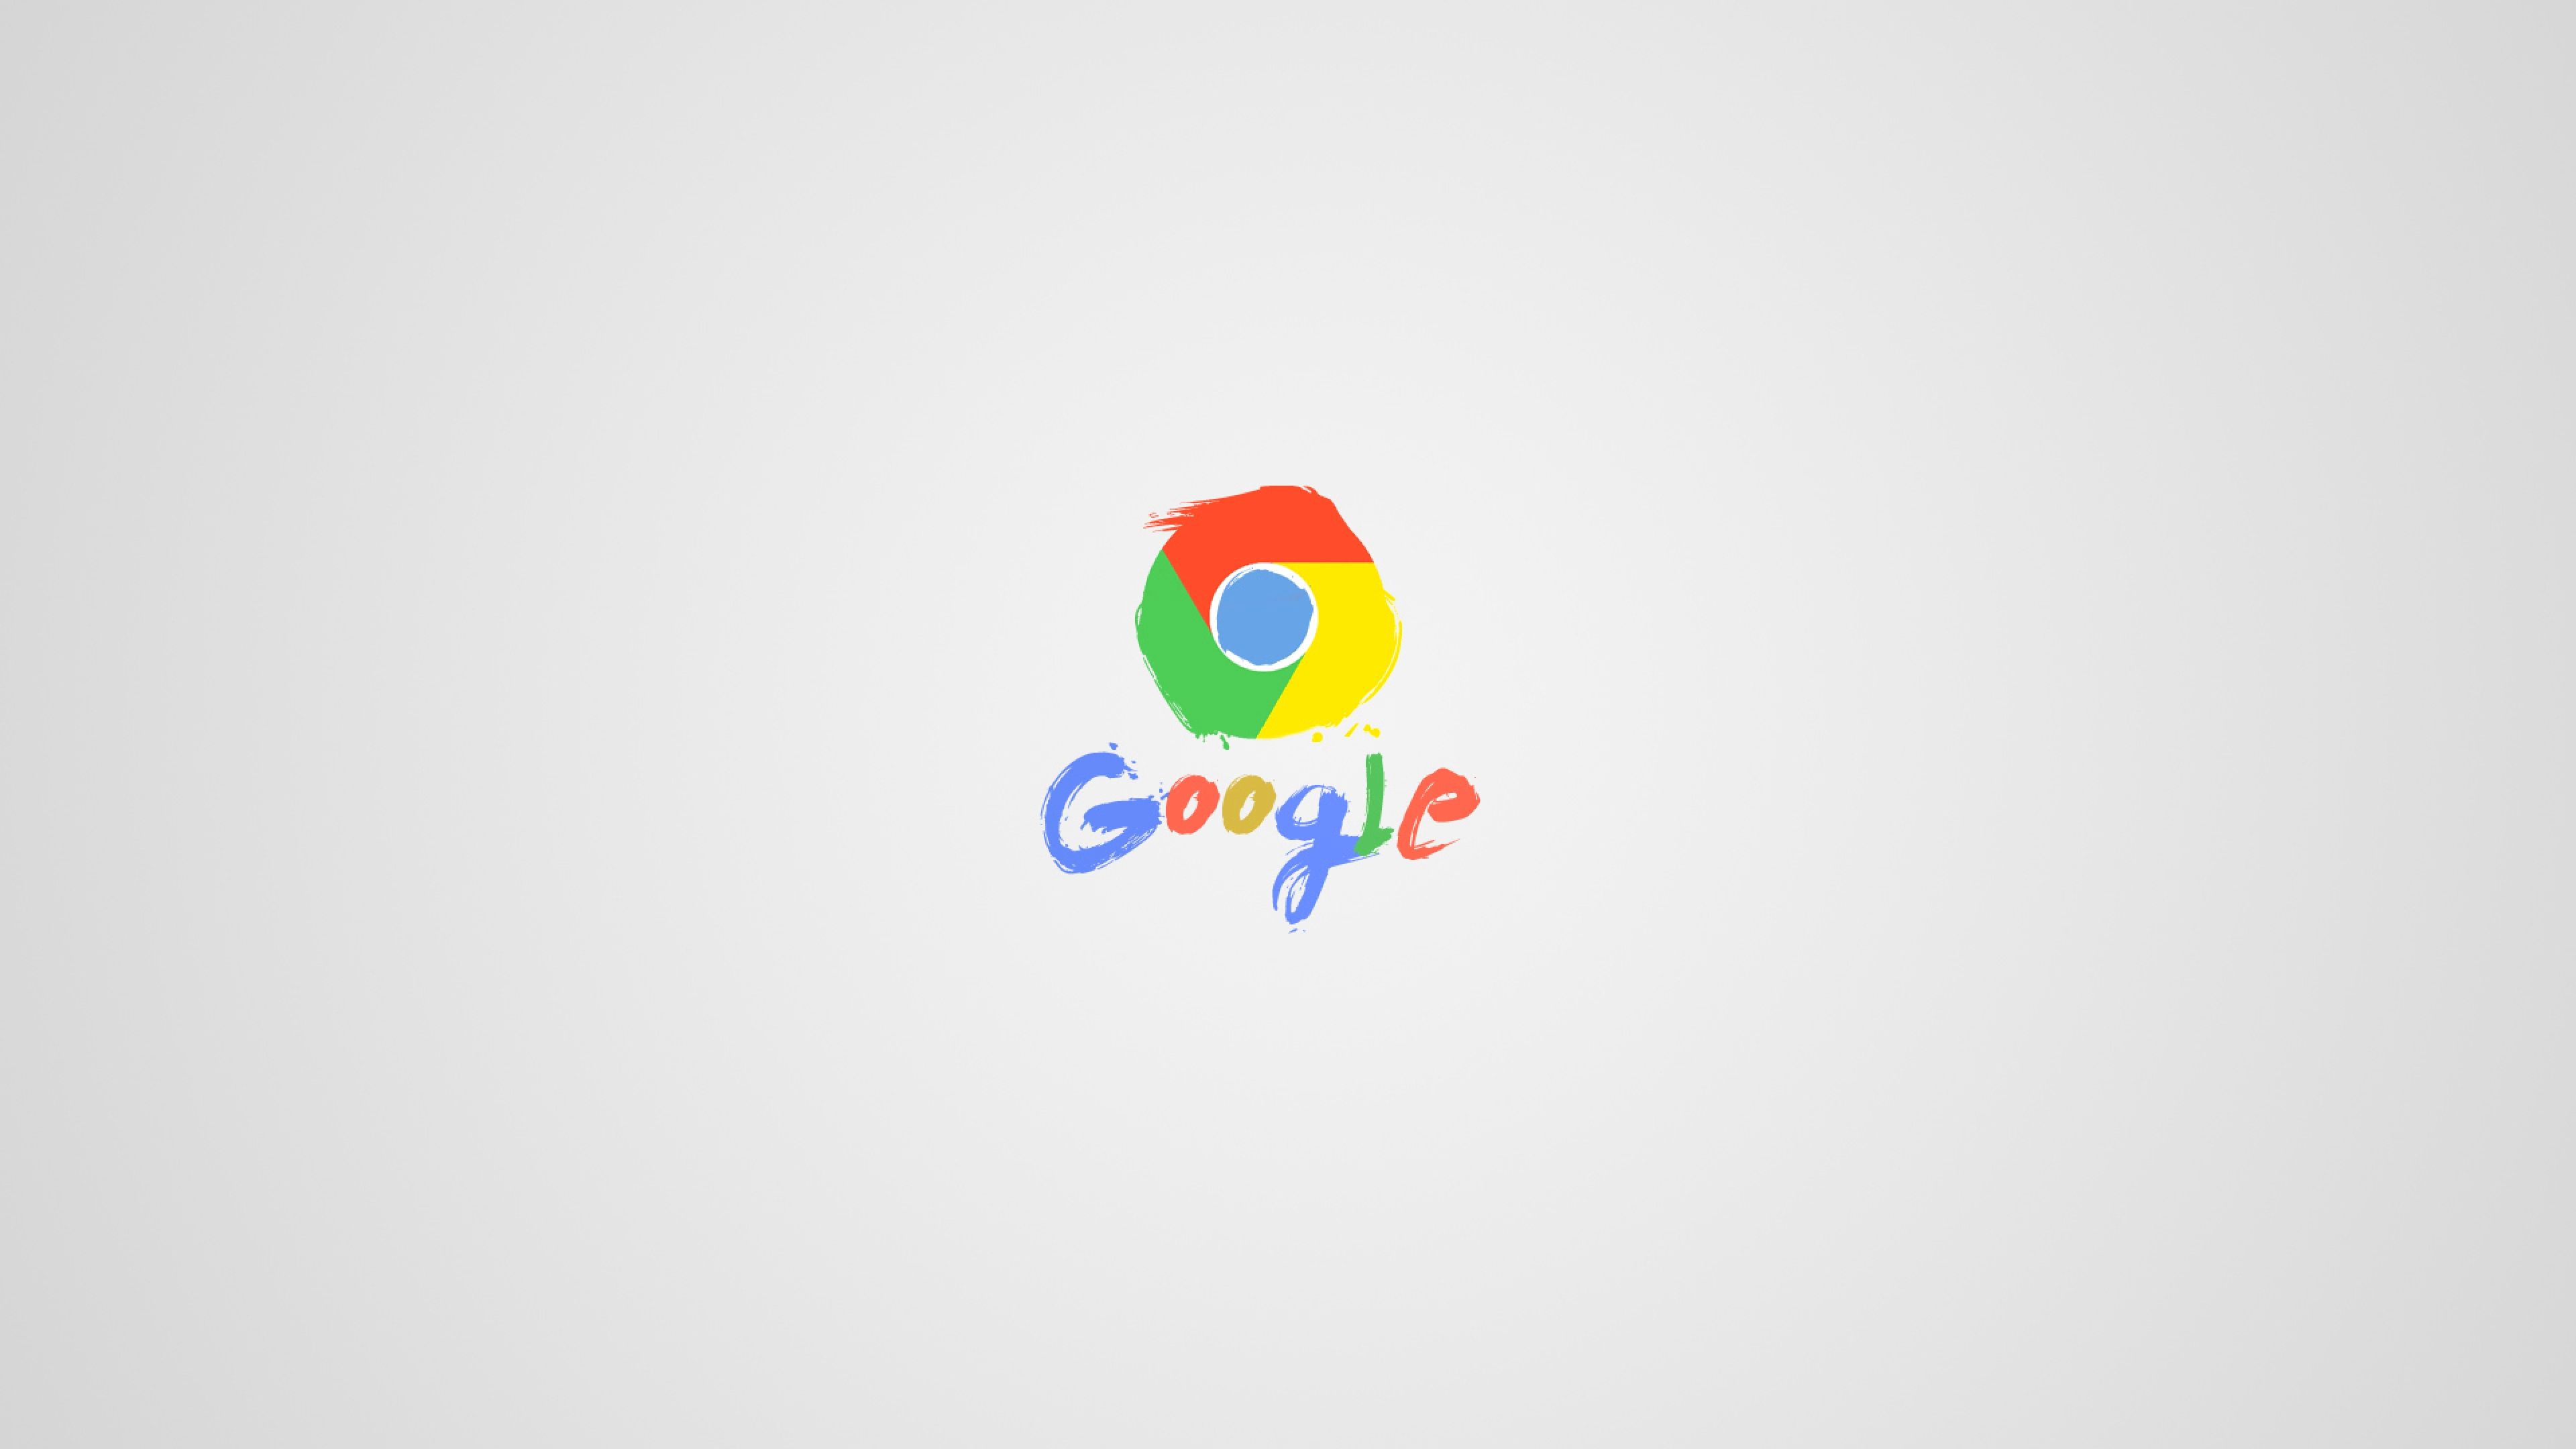 google chrome art hd logo 4k wallpapers images backgrounds